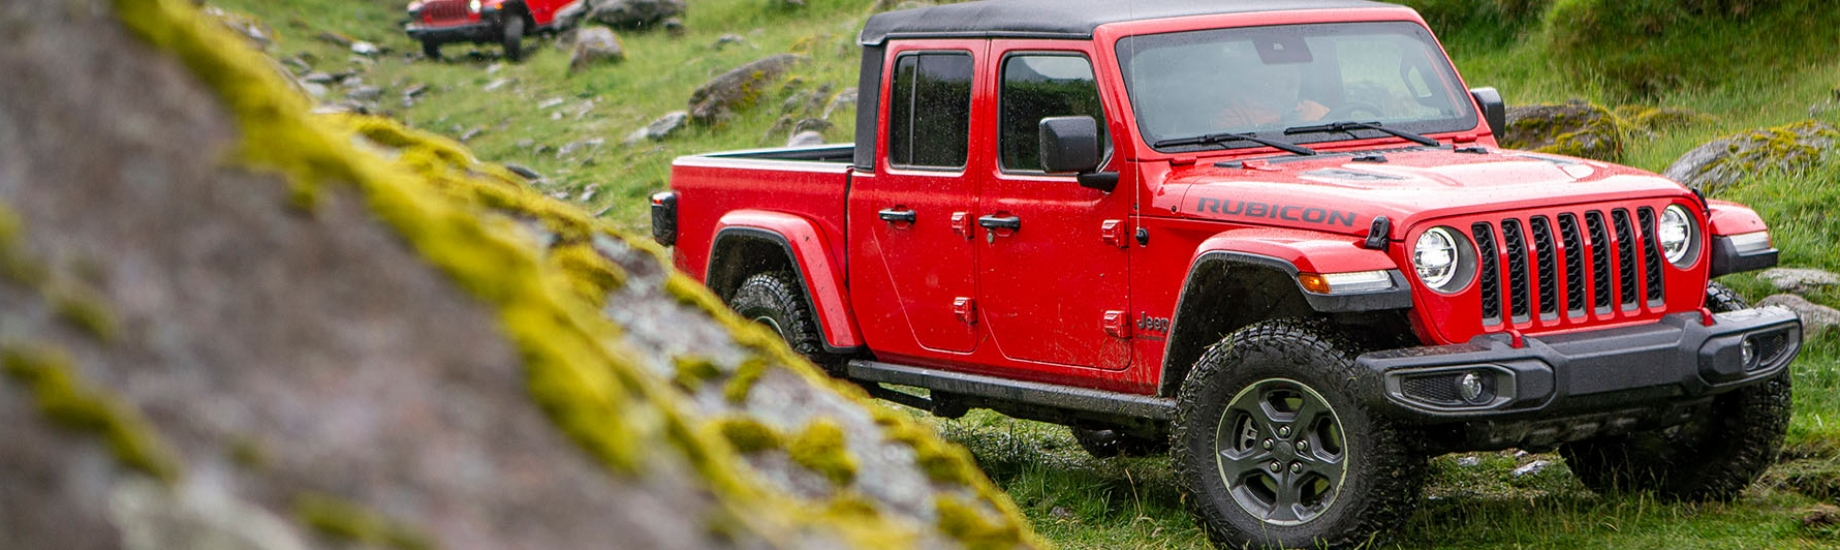 ALL-NEW JEEP GLADIATOR